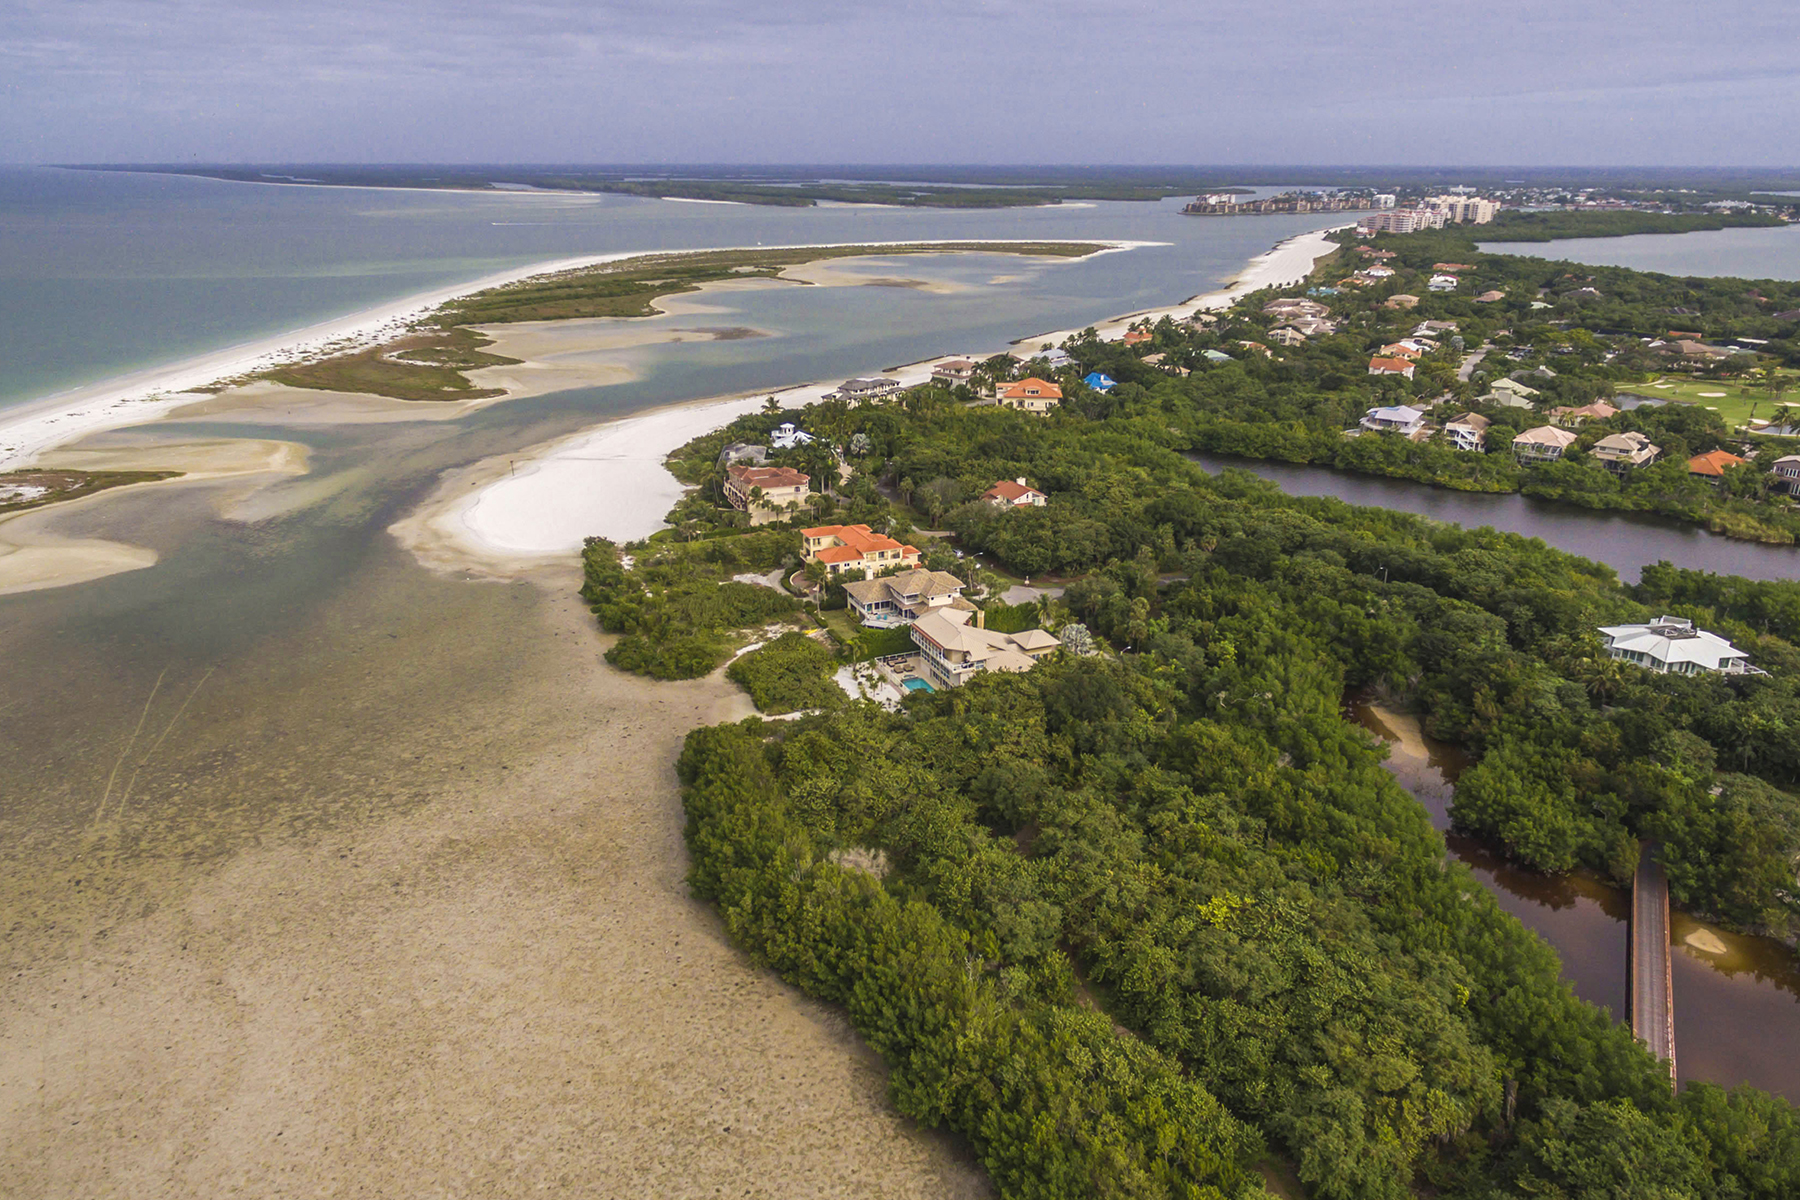 Land for Sale at HIDEAWAY BEACH 850 Sea Dune Ln, Marco Island, Florida 34145 United States